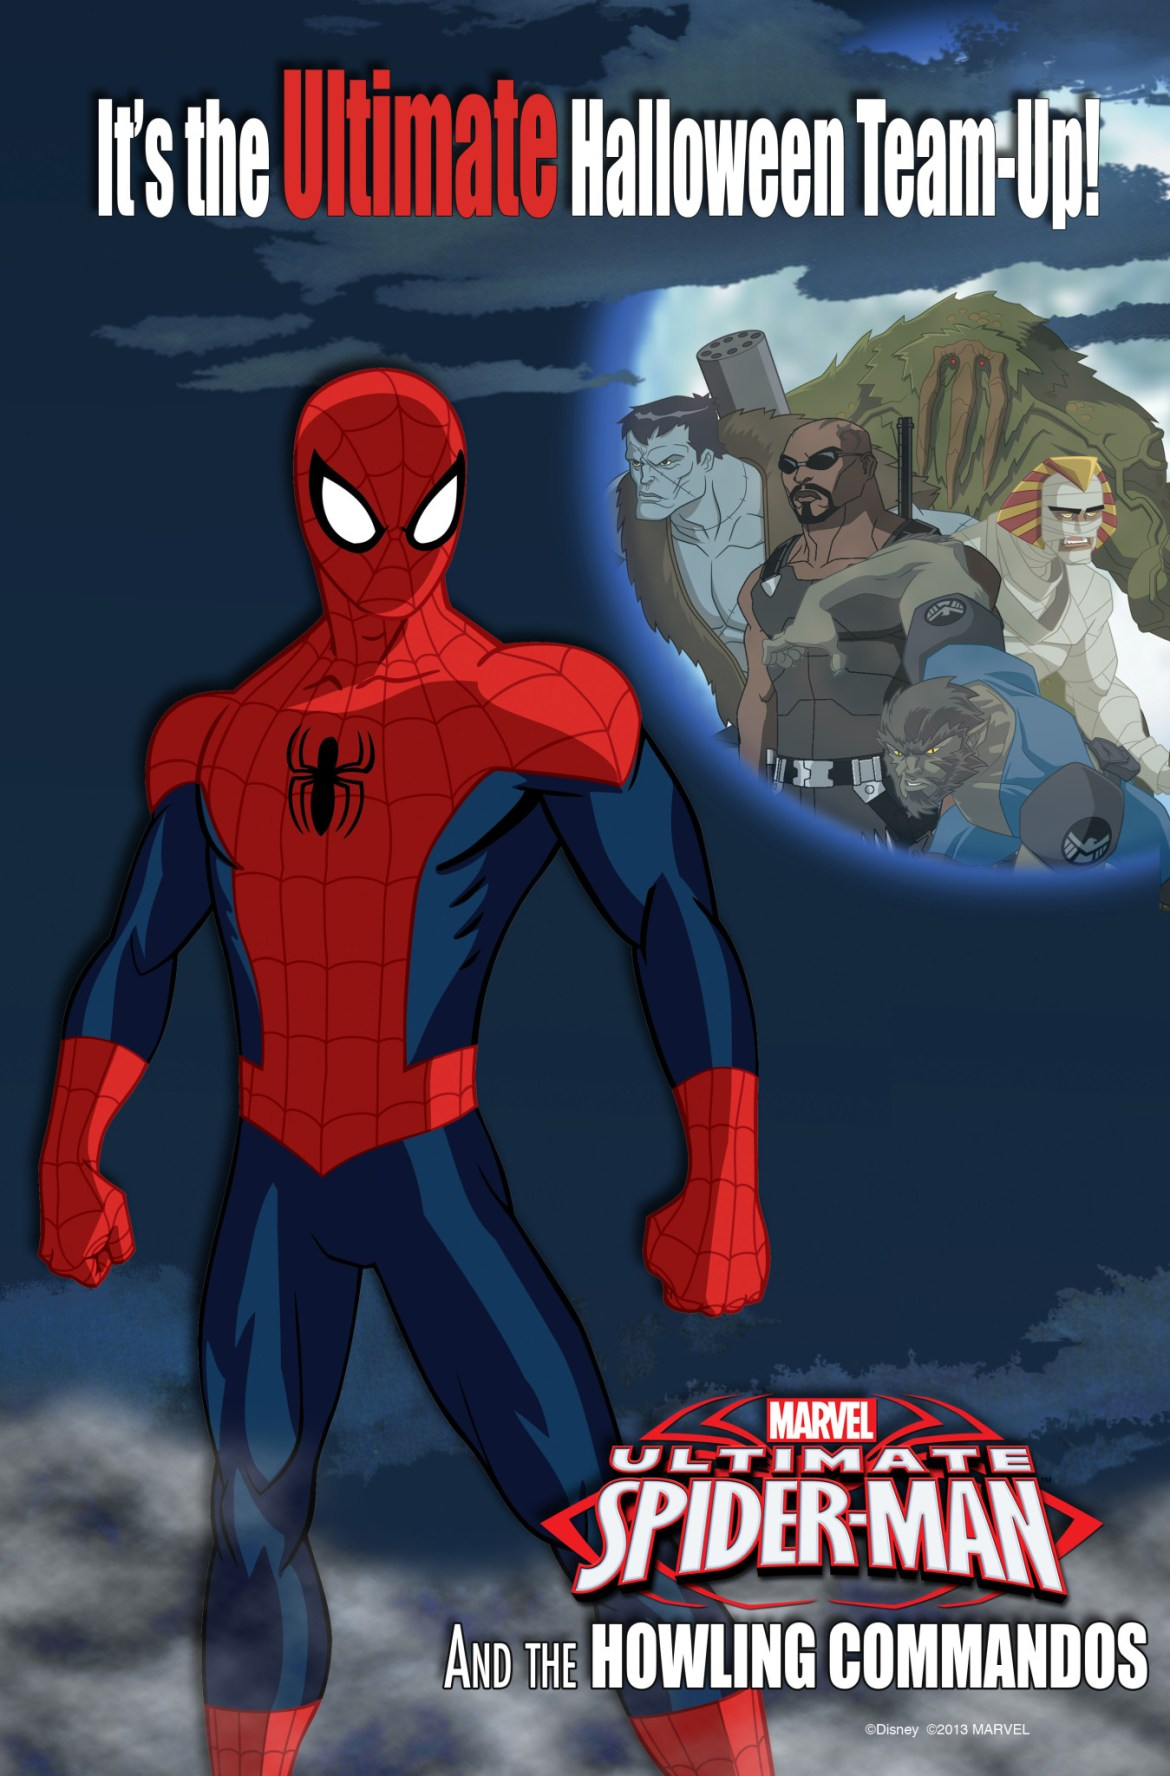 'Ultimate Spider-Man' To Have One Hour Halloween Special on October 5, 2013